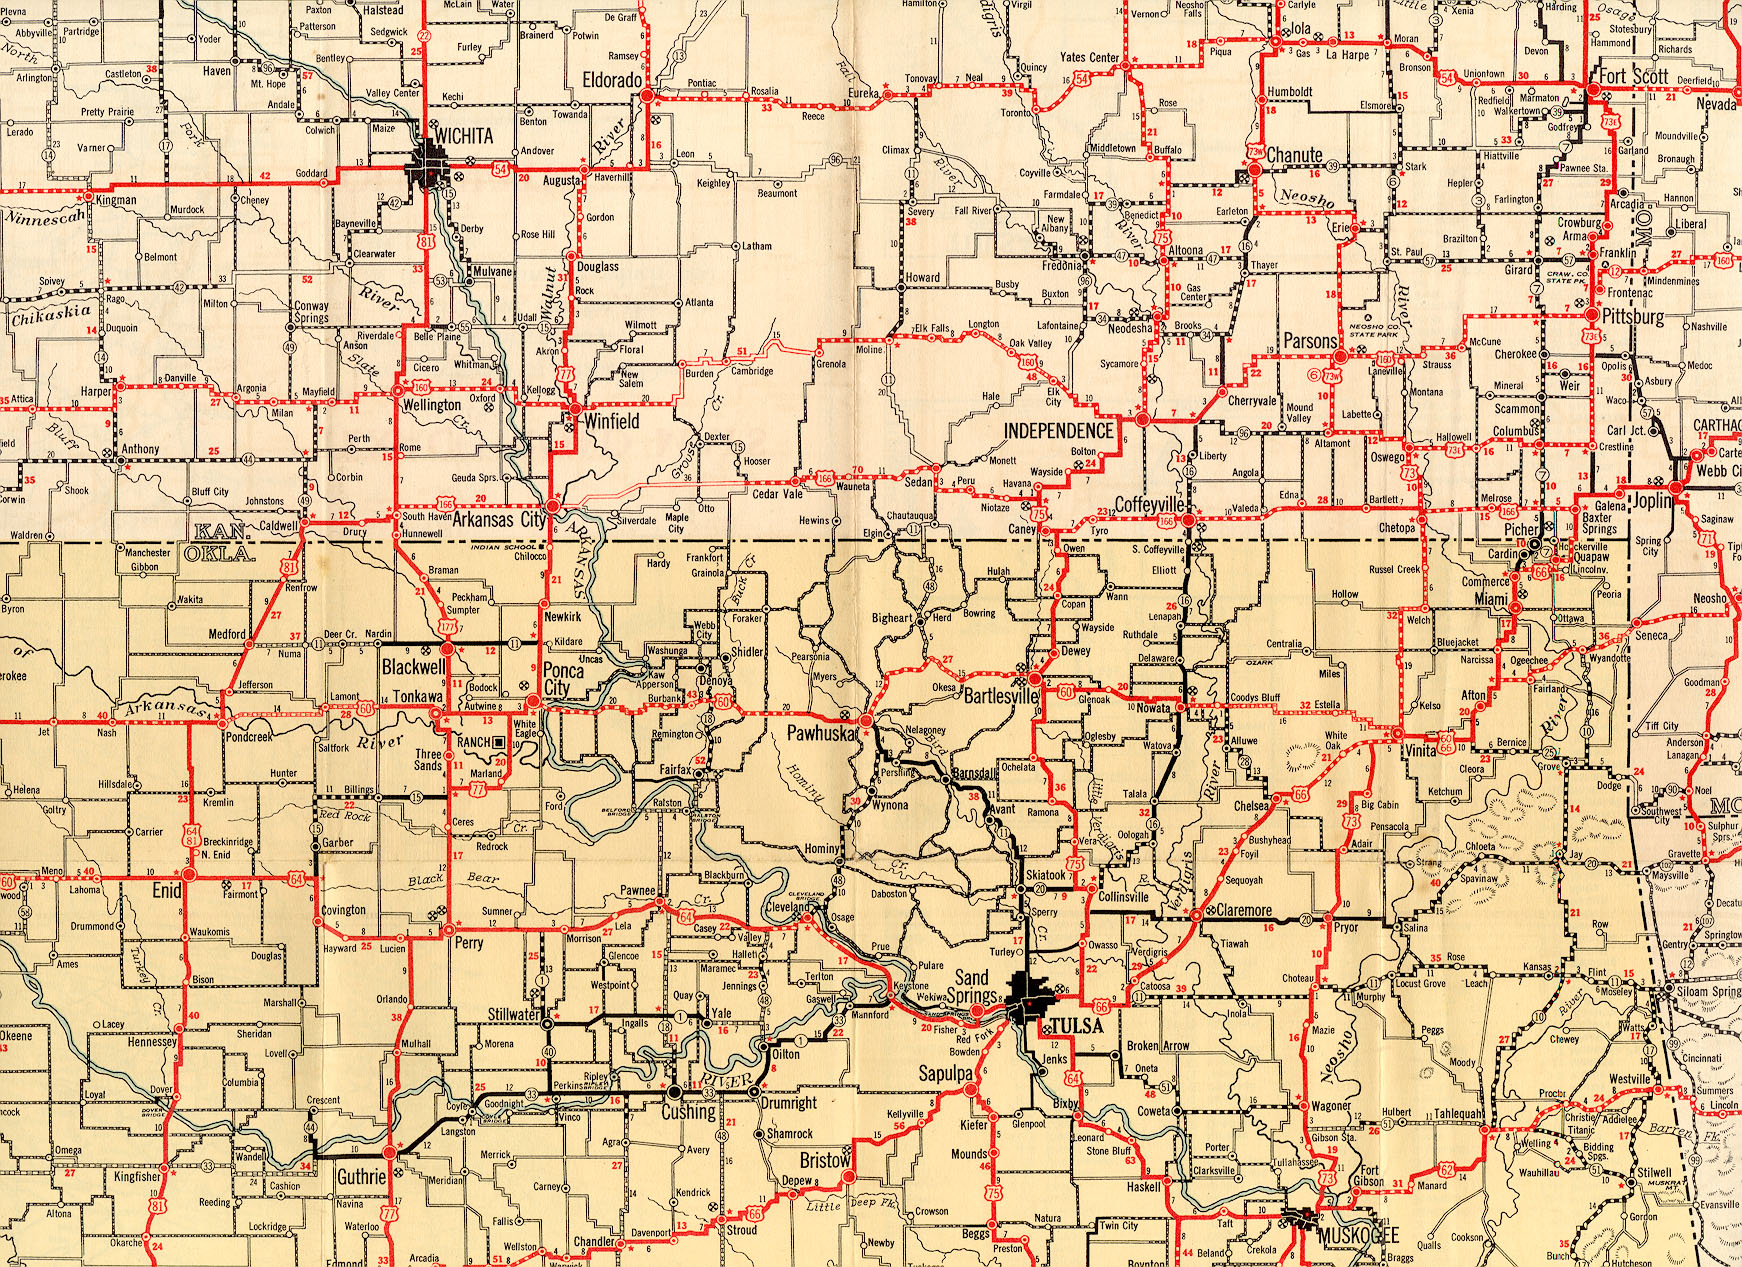 1932 Texaco Highway Map of Southern Kansas and Northern Oklahoma on kansas state physical map, map of kansas and oklahoma, kansas soil maps, missouri pacific railroad map oklahoma,